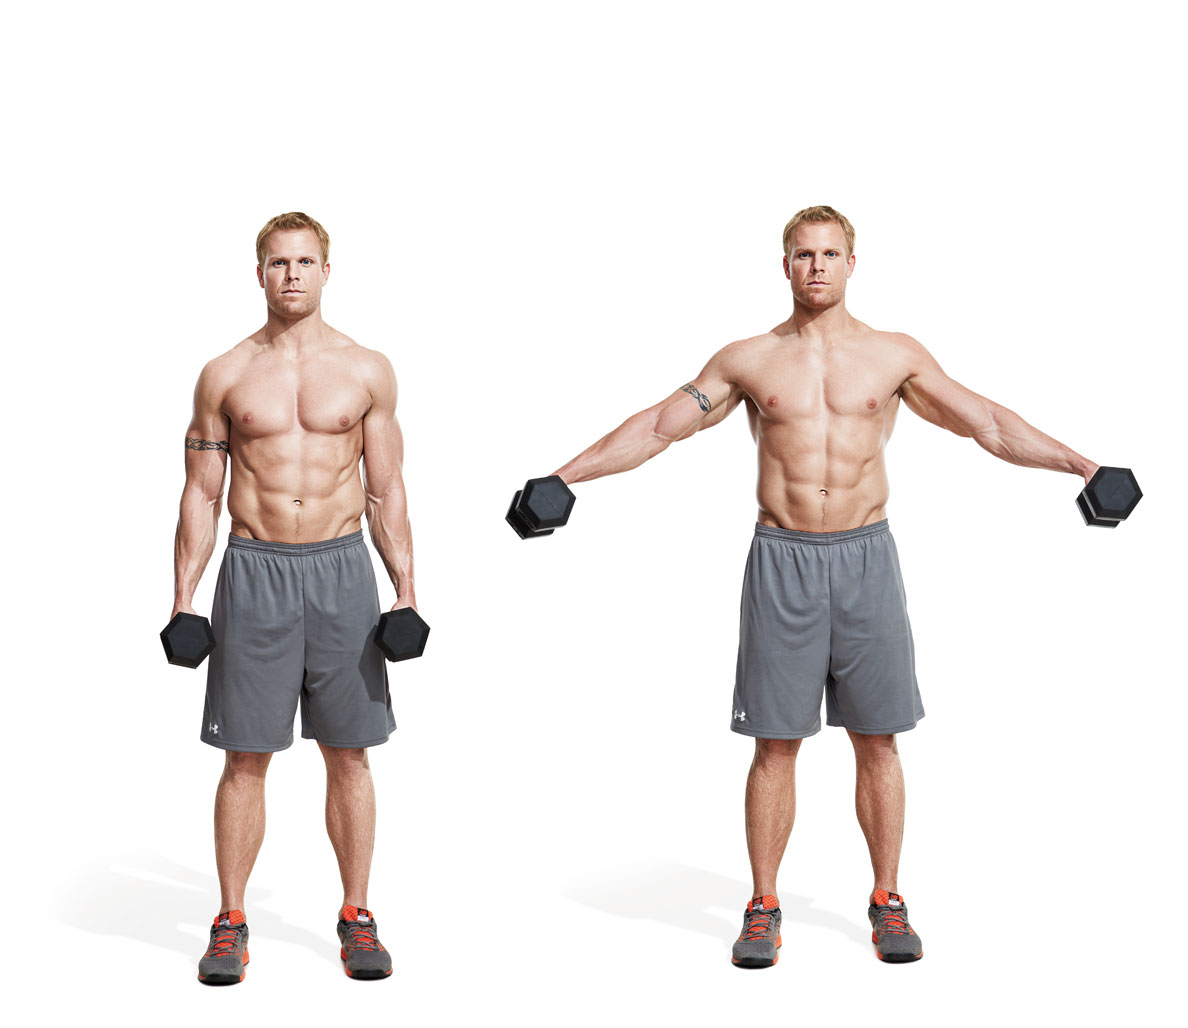 The Workout to Get Big—But Stay Shredded